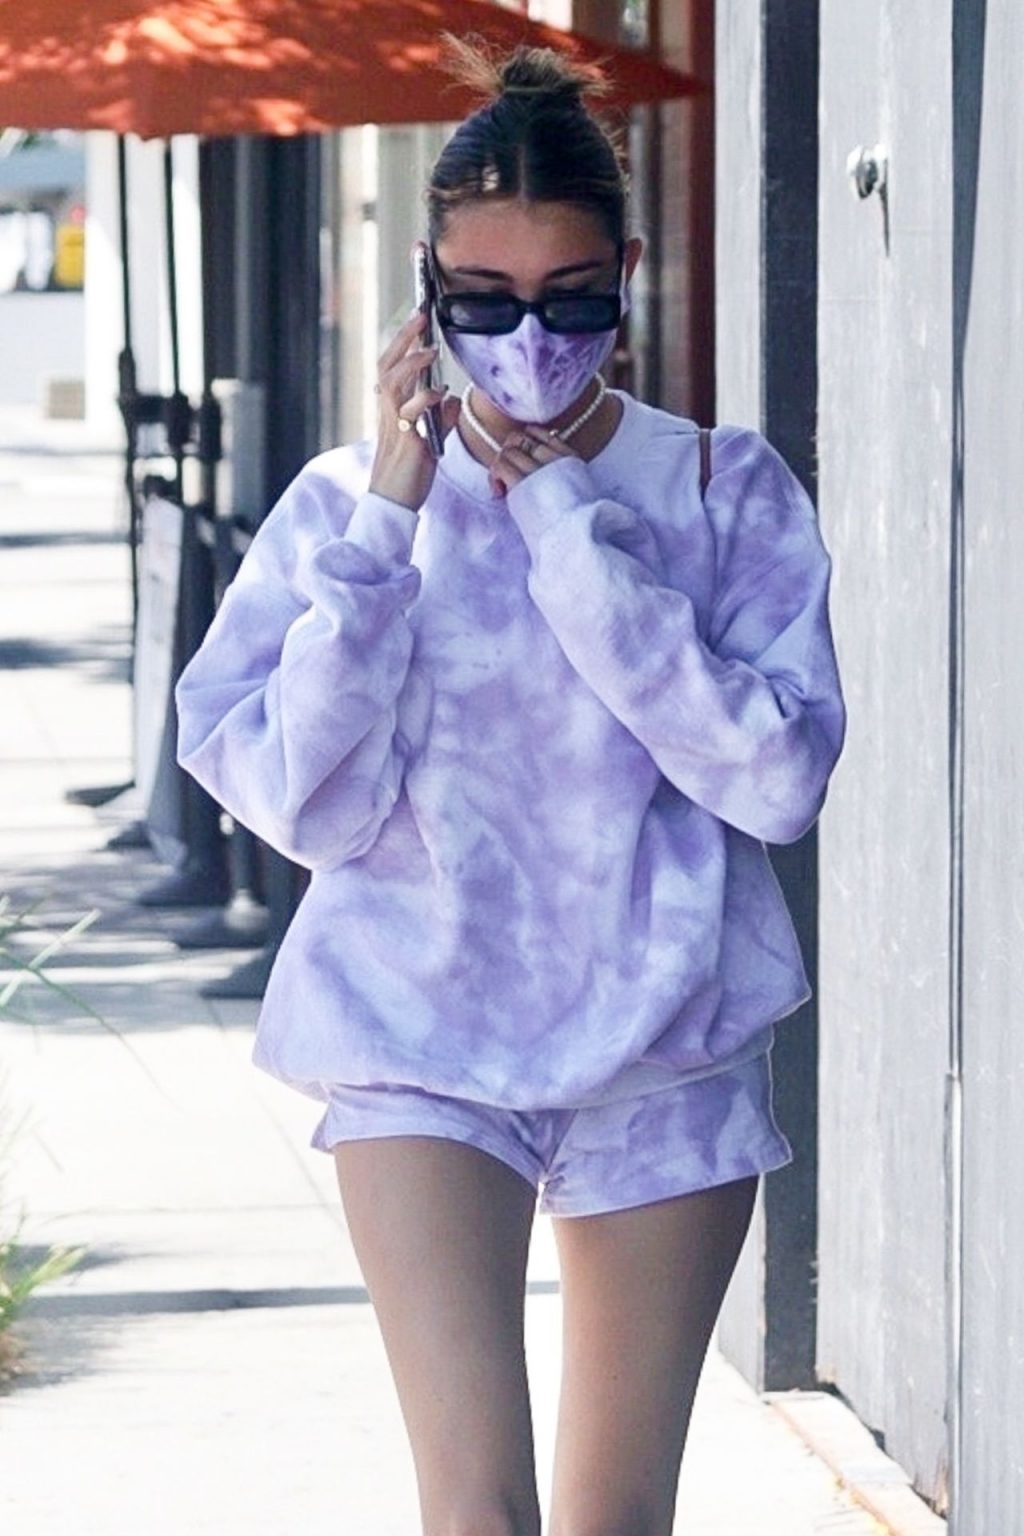 Madison Beer Knows How to Rock a Tie-dye Ensemble (16 Photos)